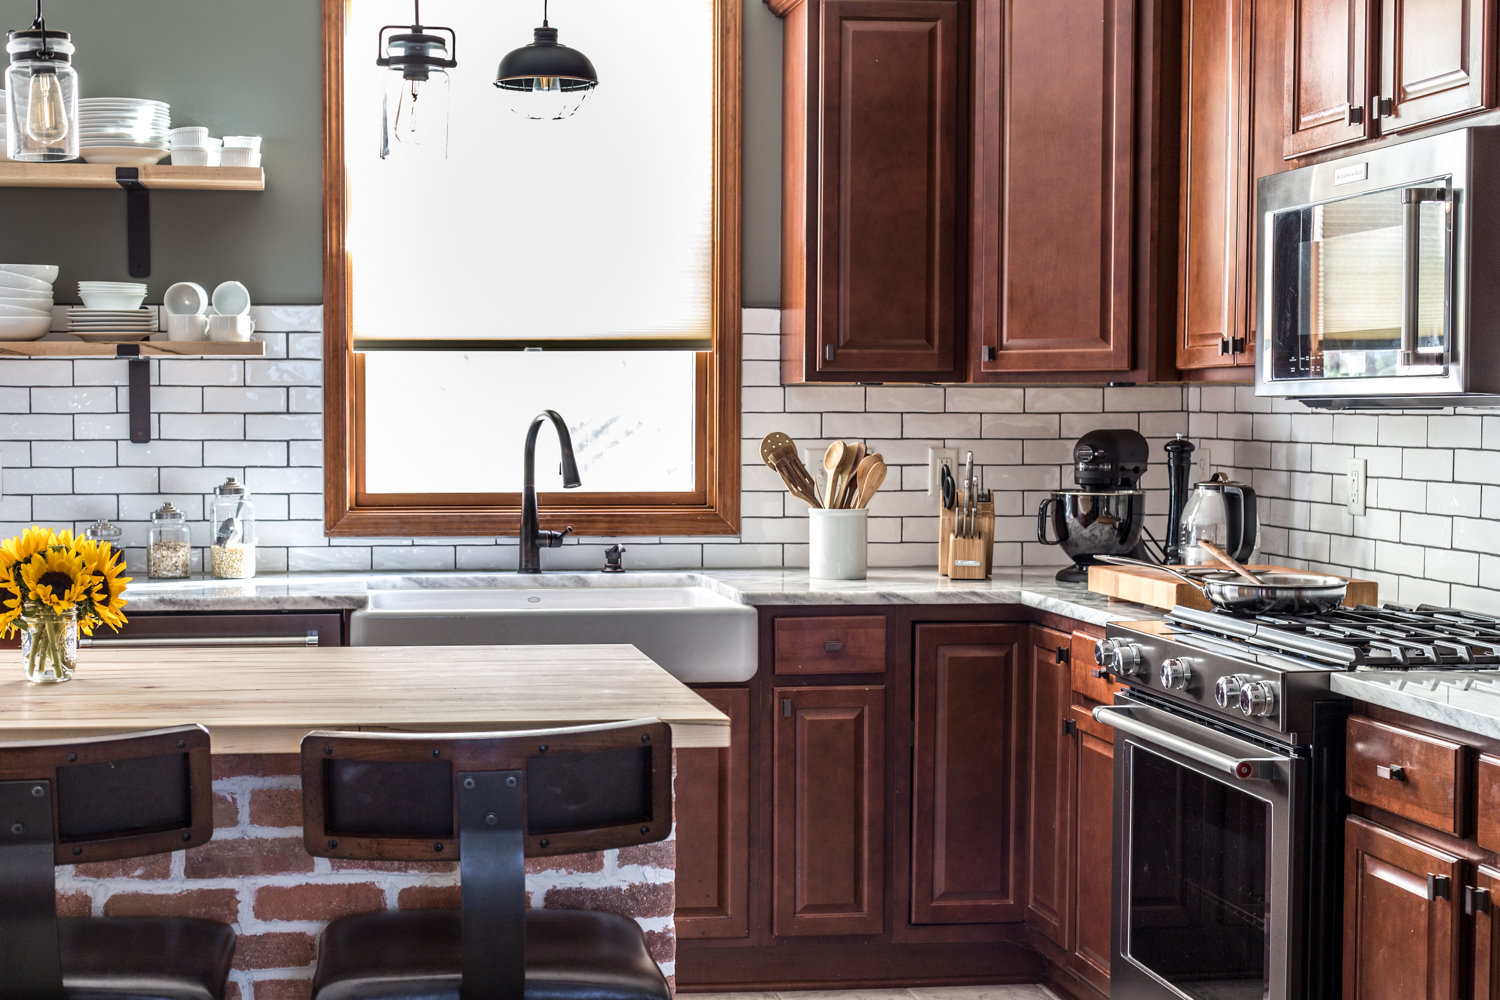 kitchen with white subway tile, black stainless, exposed brick, open shelves, black stainless kitchen renovation